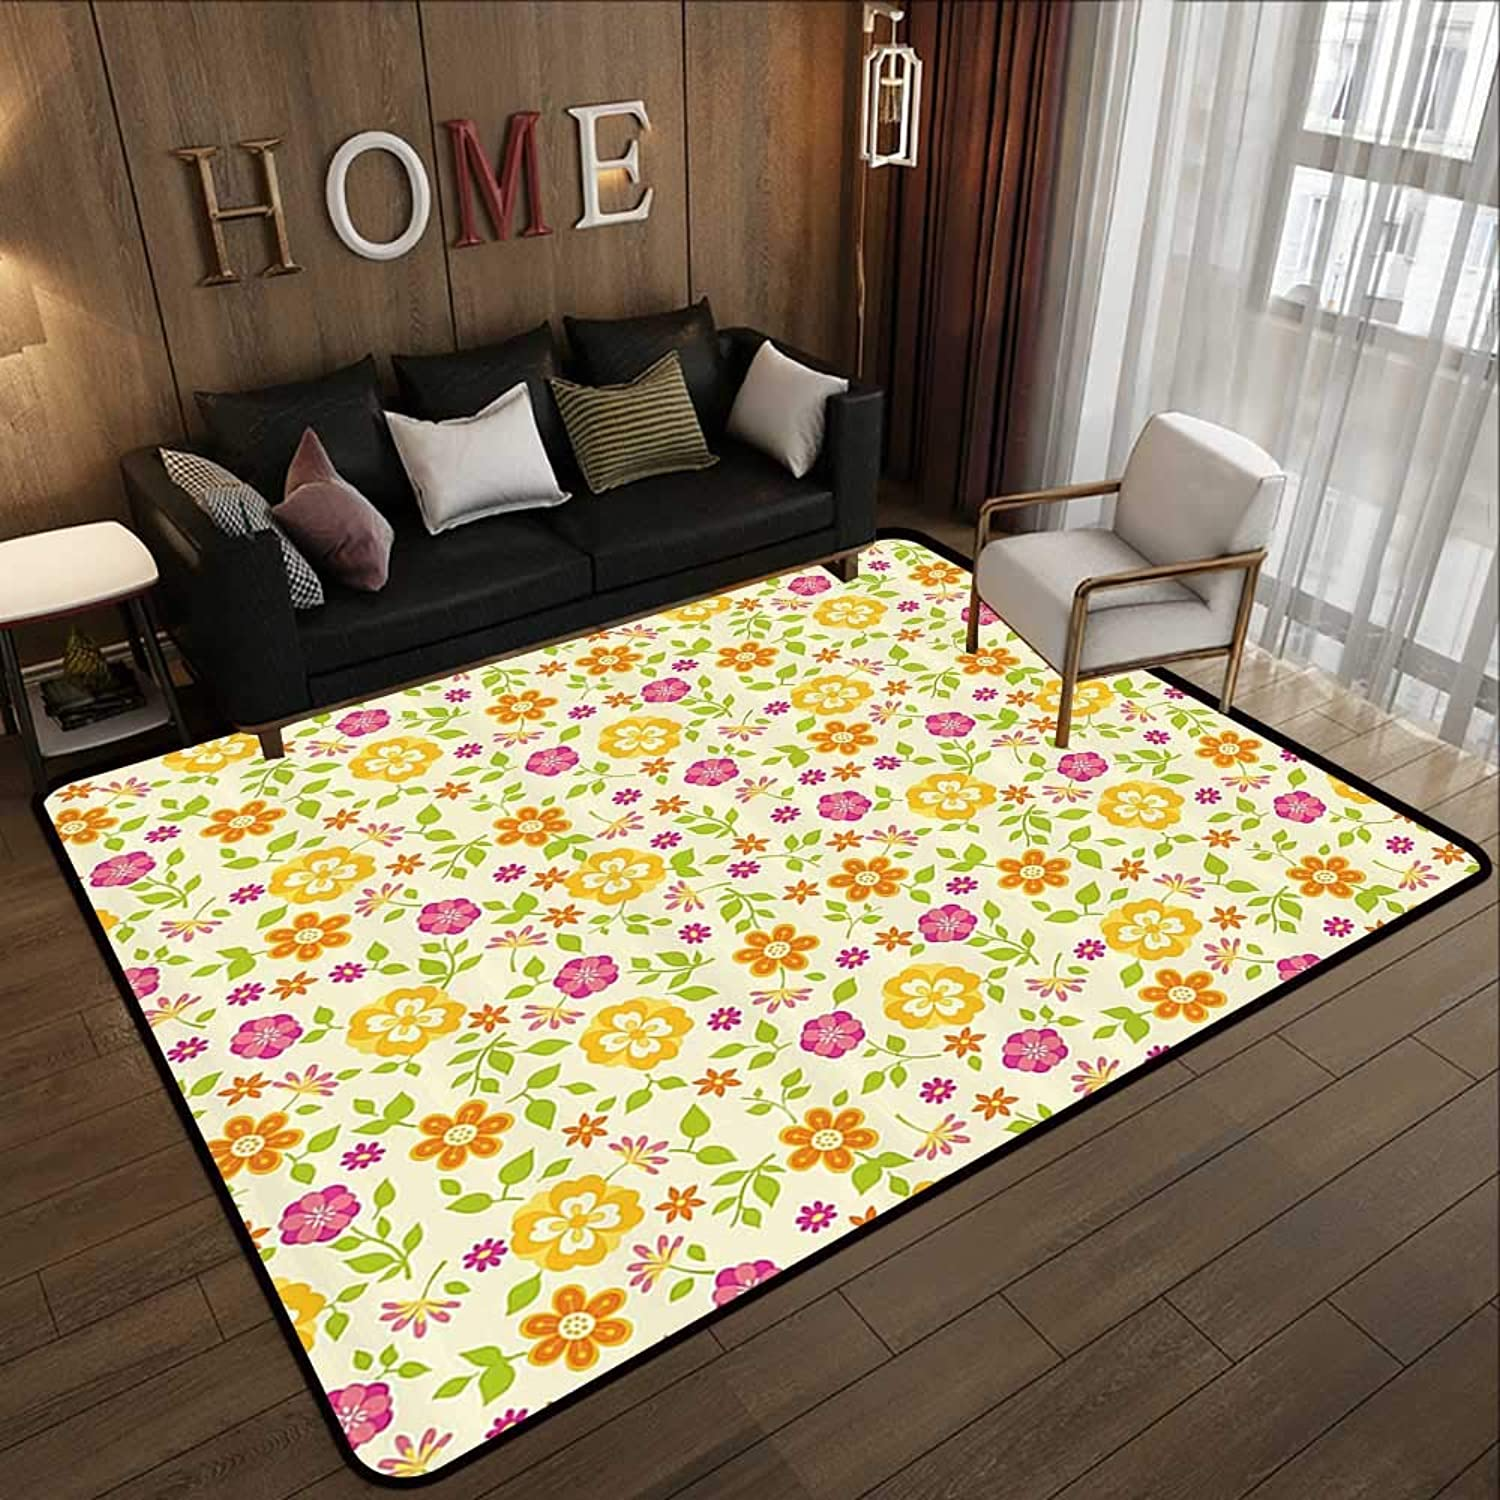 Modern Area Rug with Non-Skid,Floral,colorful Spring Themed Flower Petals Summer Florets Funky Girls Design,Pink Marigold Lime Green 47 x 59  Indoor Super Absorbs Doormat